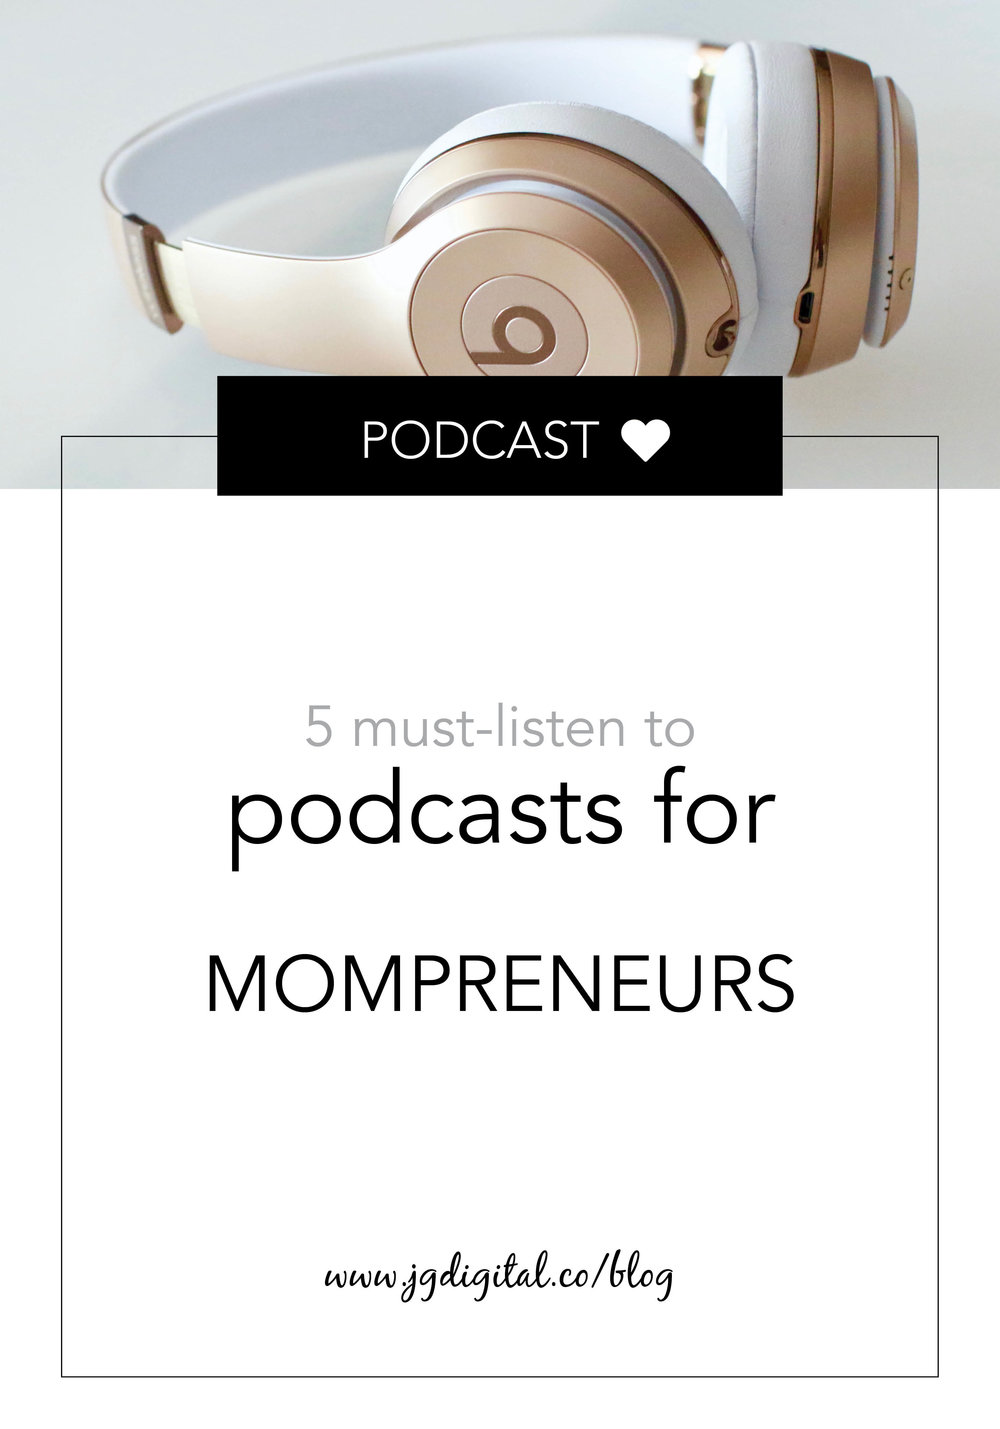 Blog - 5 Podcasts for Mompreneurs